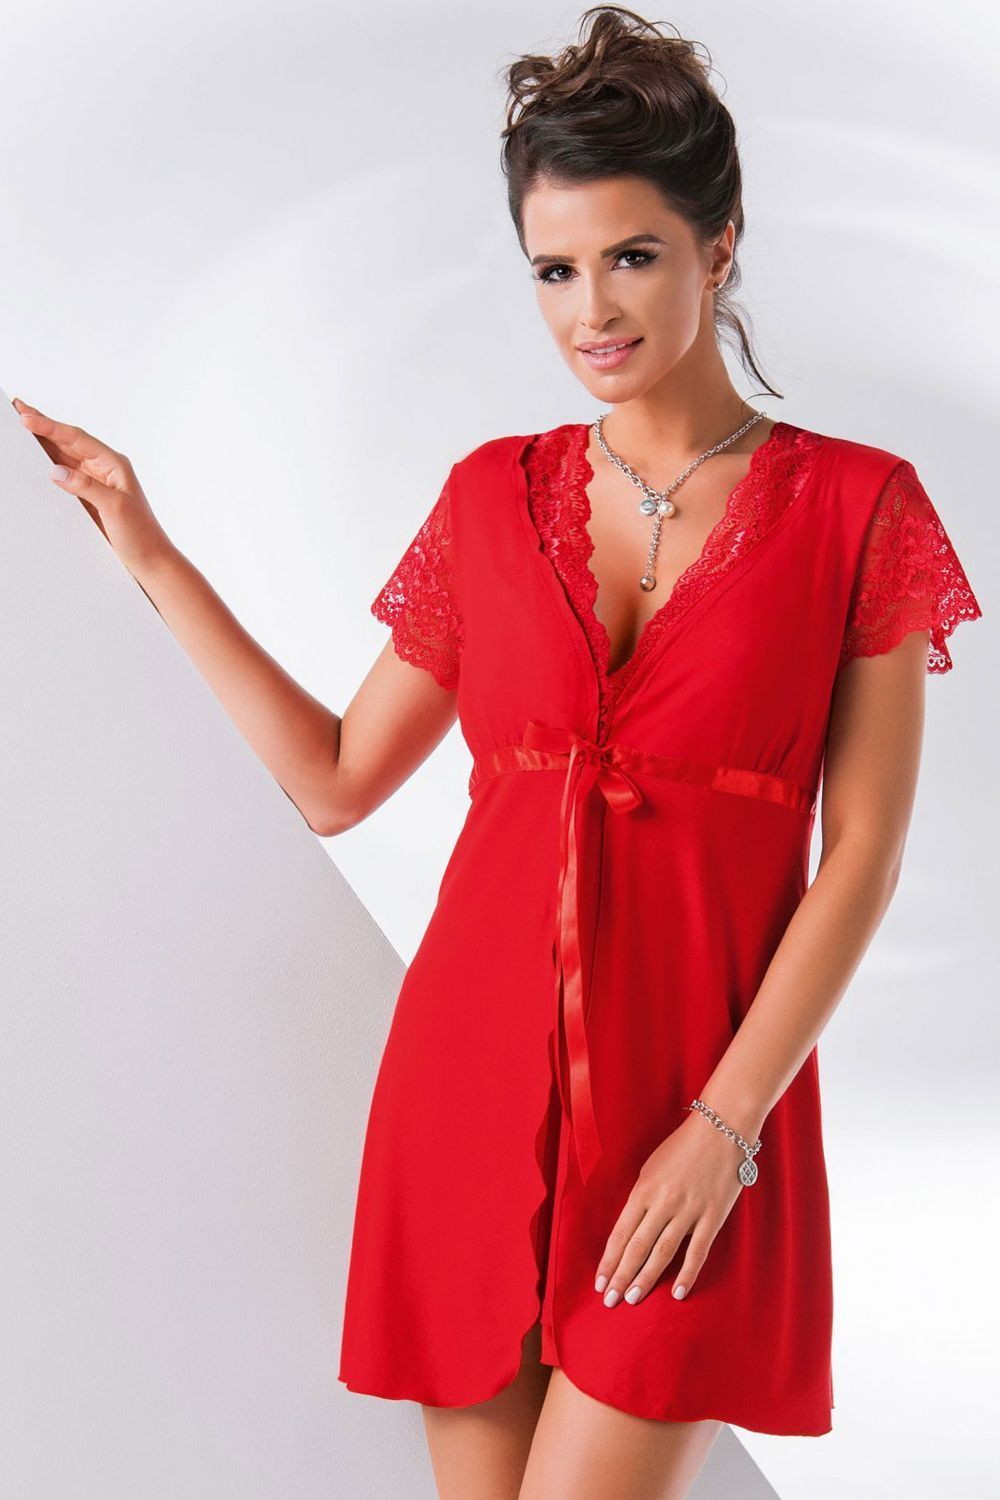 Megi dressing gown Red, don_megi dressing gown red, donna, Польша купить оптом на на Vishcopt.ru